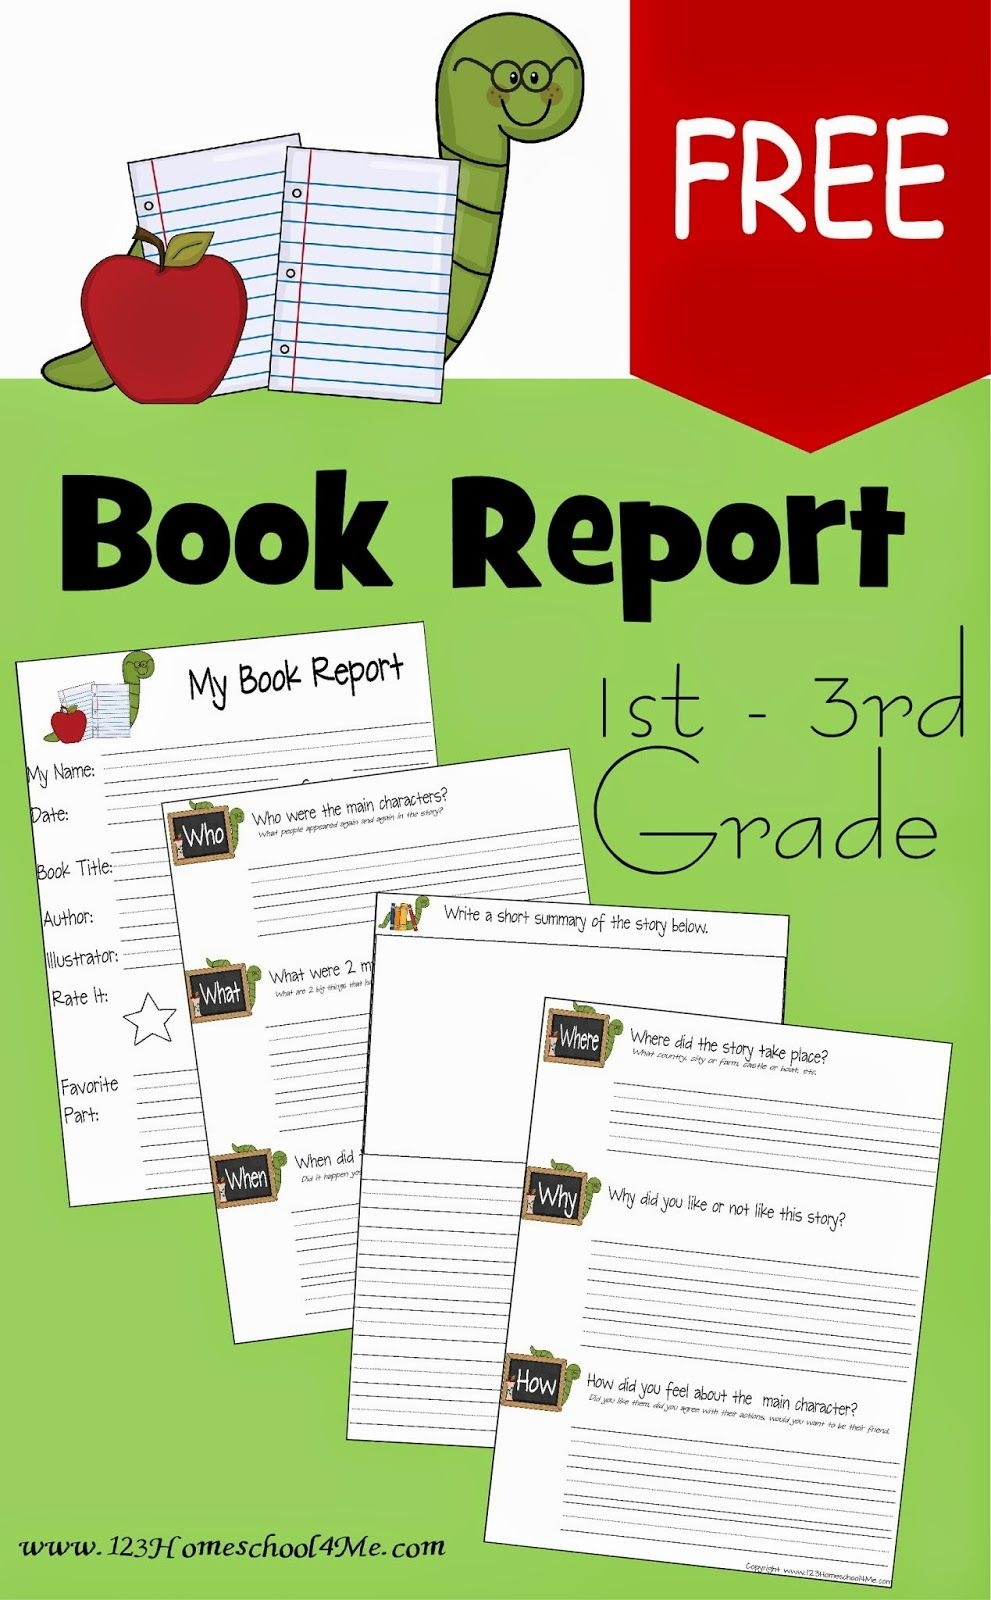 Free Book Report Template | School | 1St Grade Books, 3Rd Grade - Free Printable Book Report Forms For Second Grade